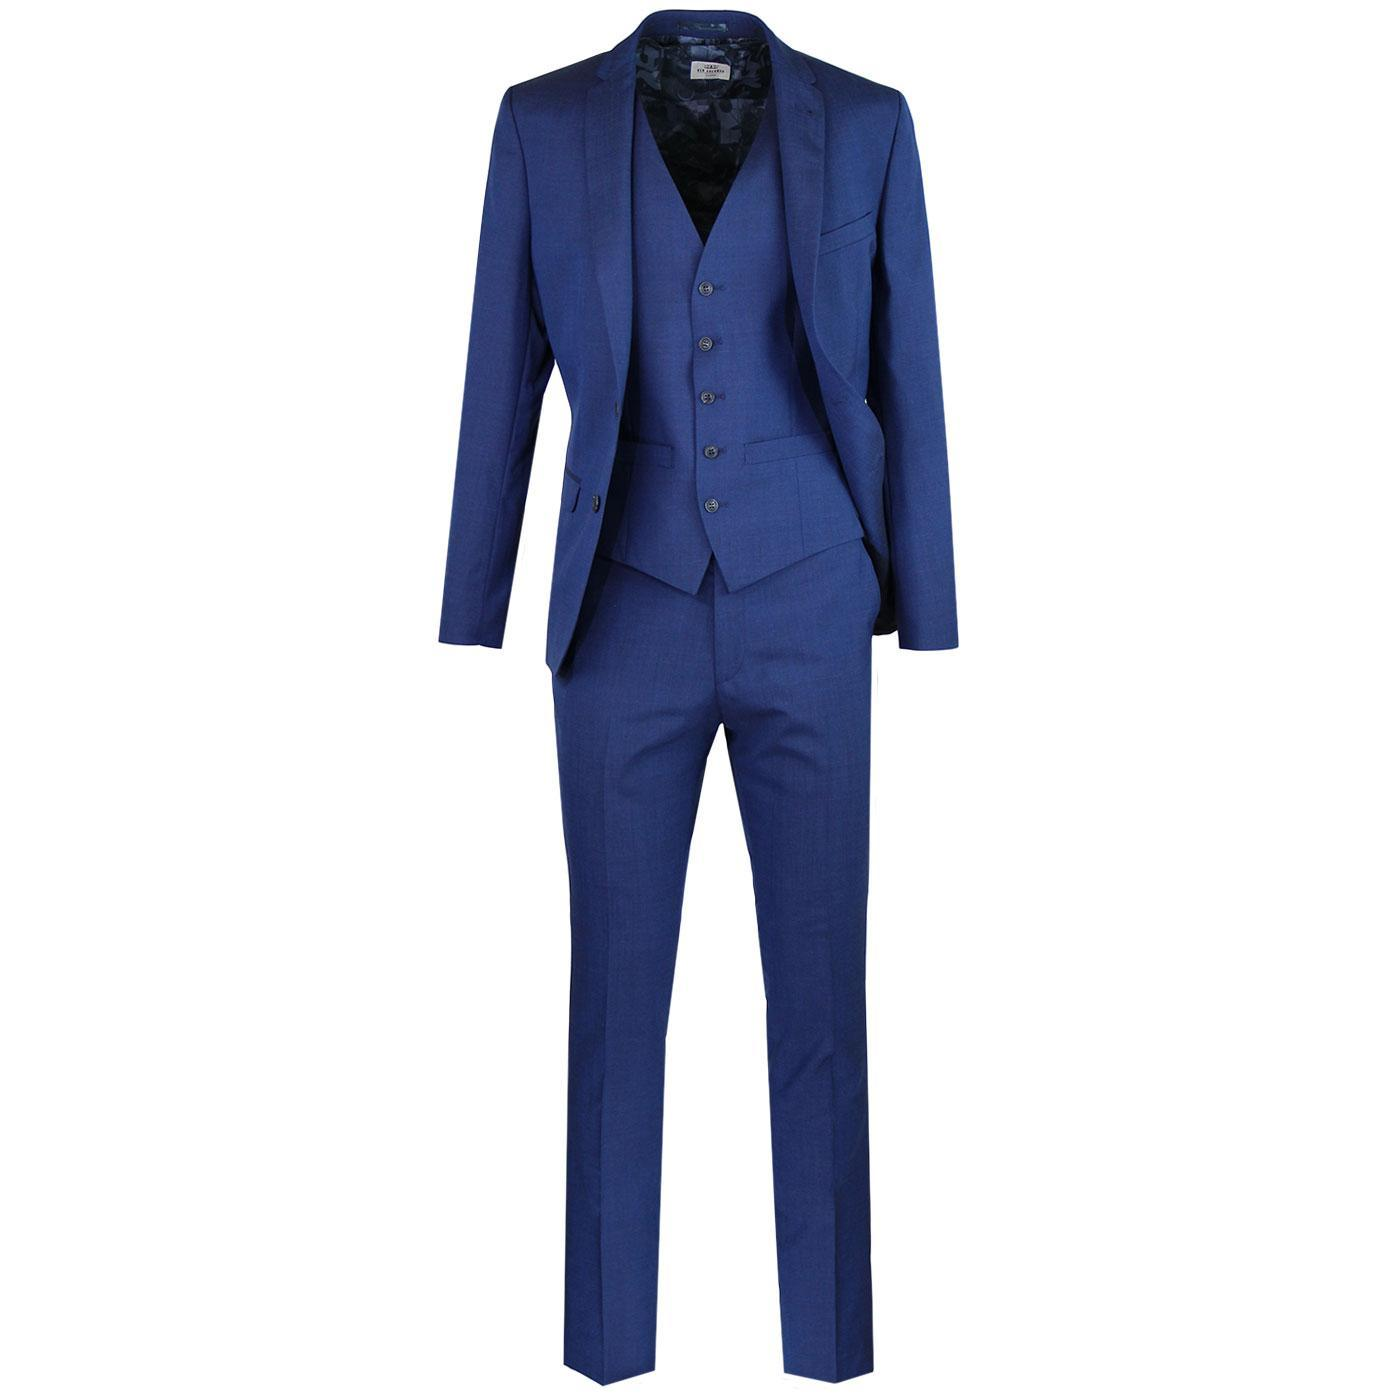 BEN SHERMAN Mod Tonic Scooter Suit in Bright Blue